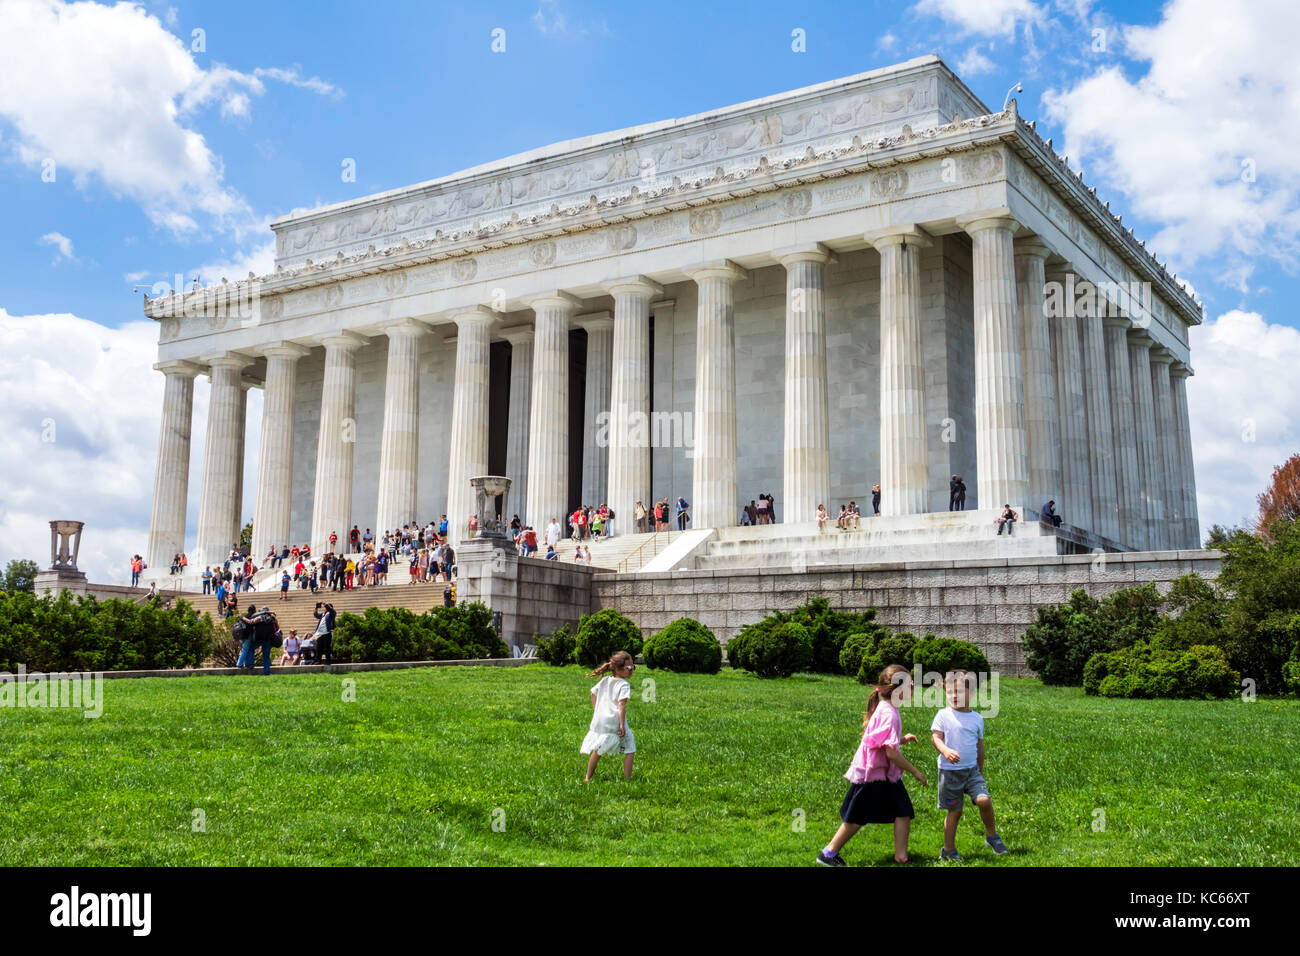 Washington DC District of Columbia National Mall Lincoln Memorial monument lawn children kids - Stock Image